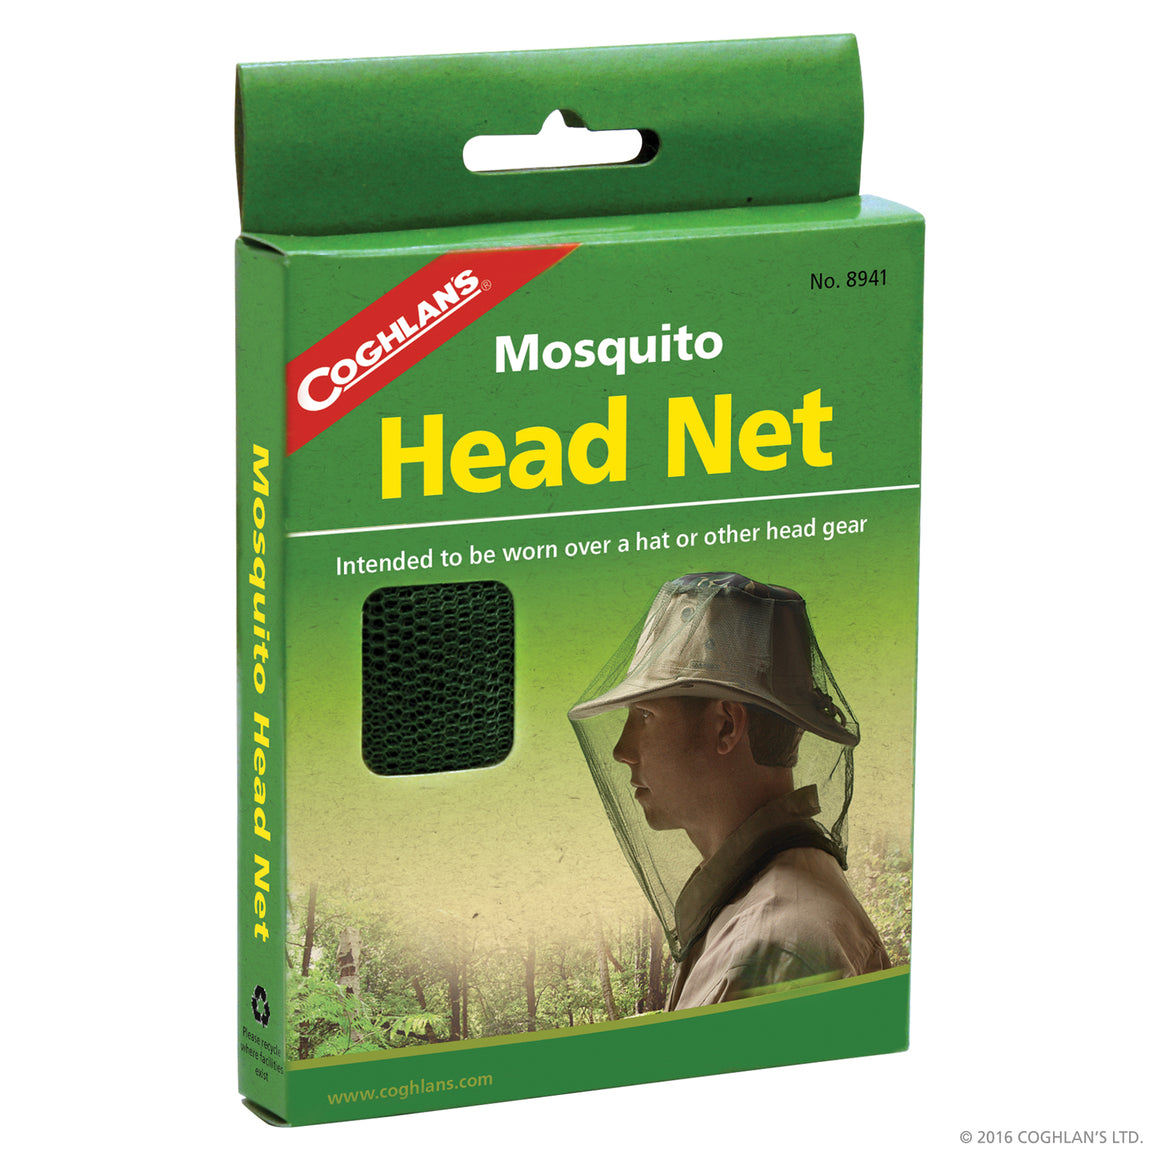 Coghlans Pocket Mosquito Head Net, Coghlans Pocket Mosquito Head Net